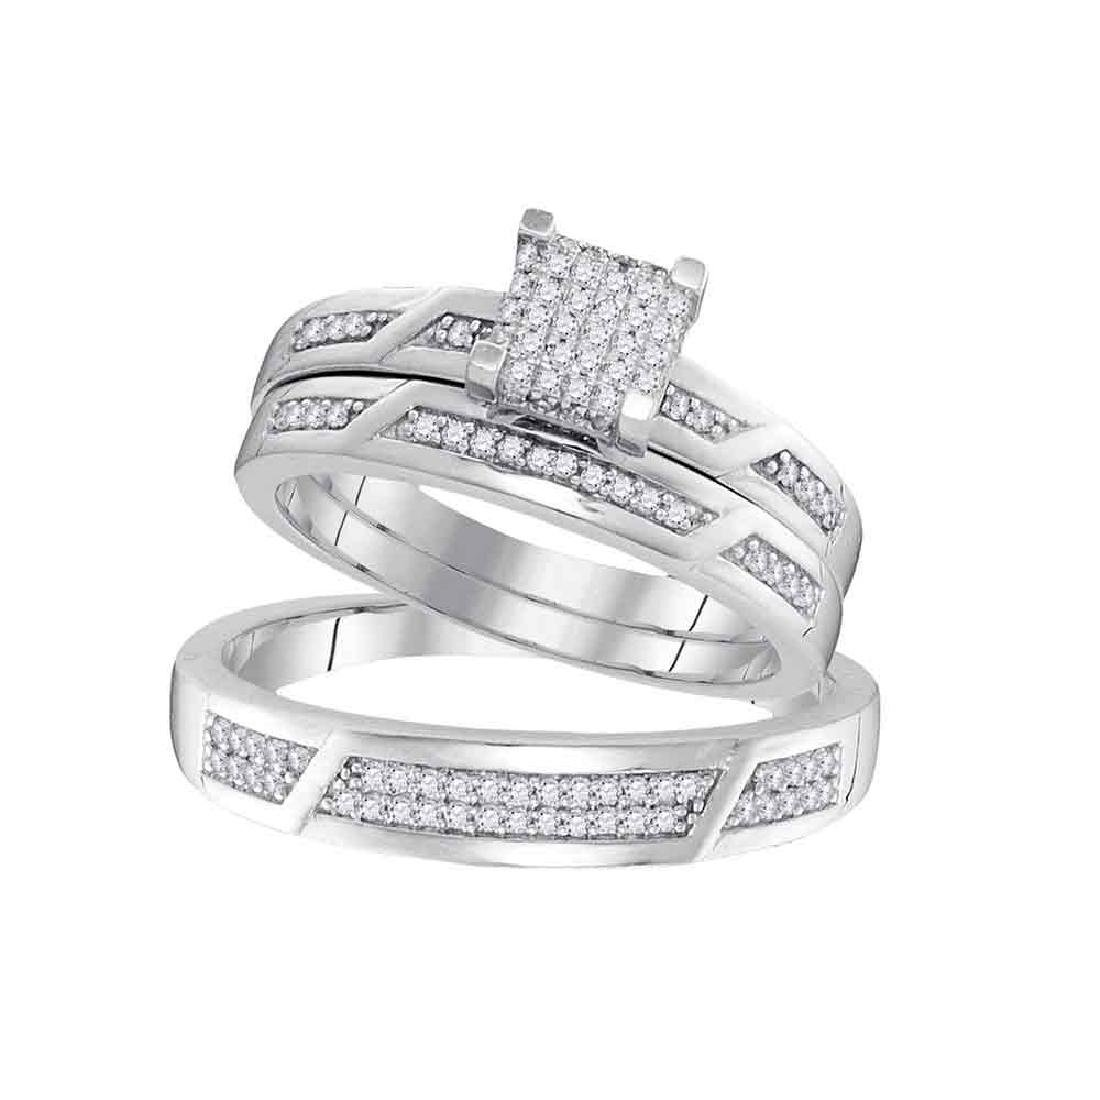 0.33 CTW His & Hers Diamond Cluster Matching Bridal